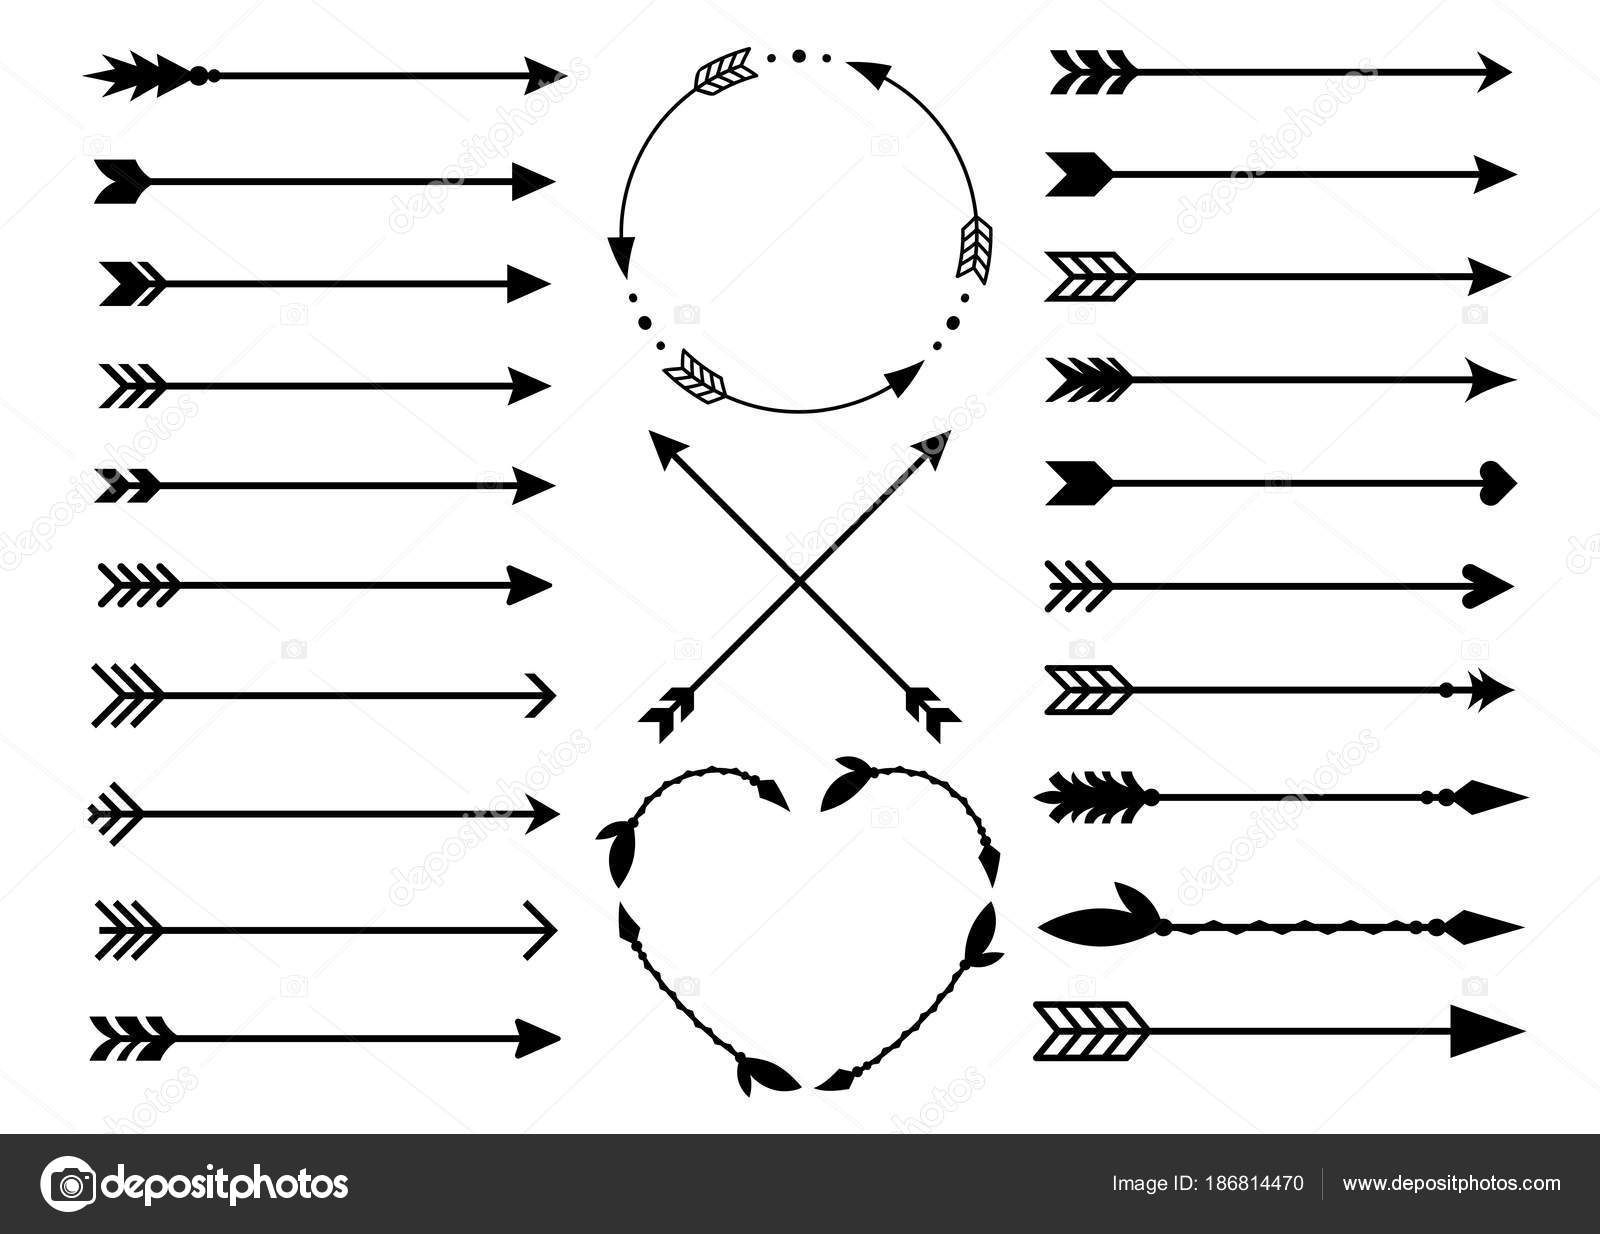 Hipster Arrows In Boho Style Tribal Set Of Indian Vector Collection By Chereliss